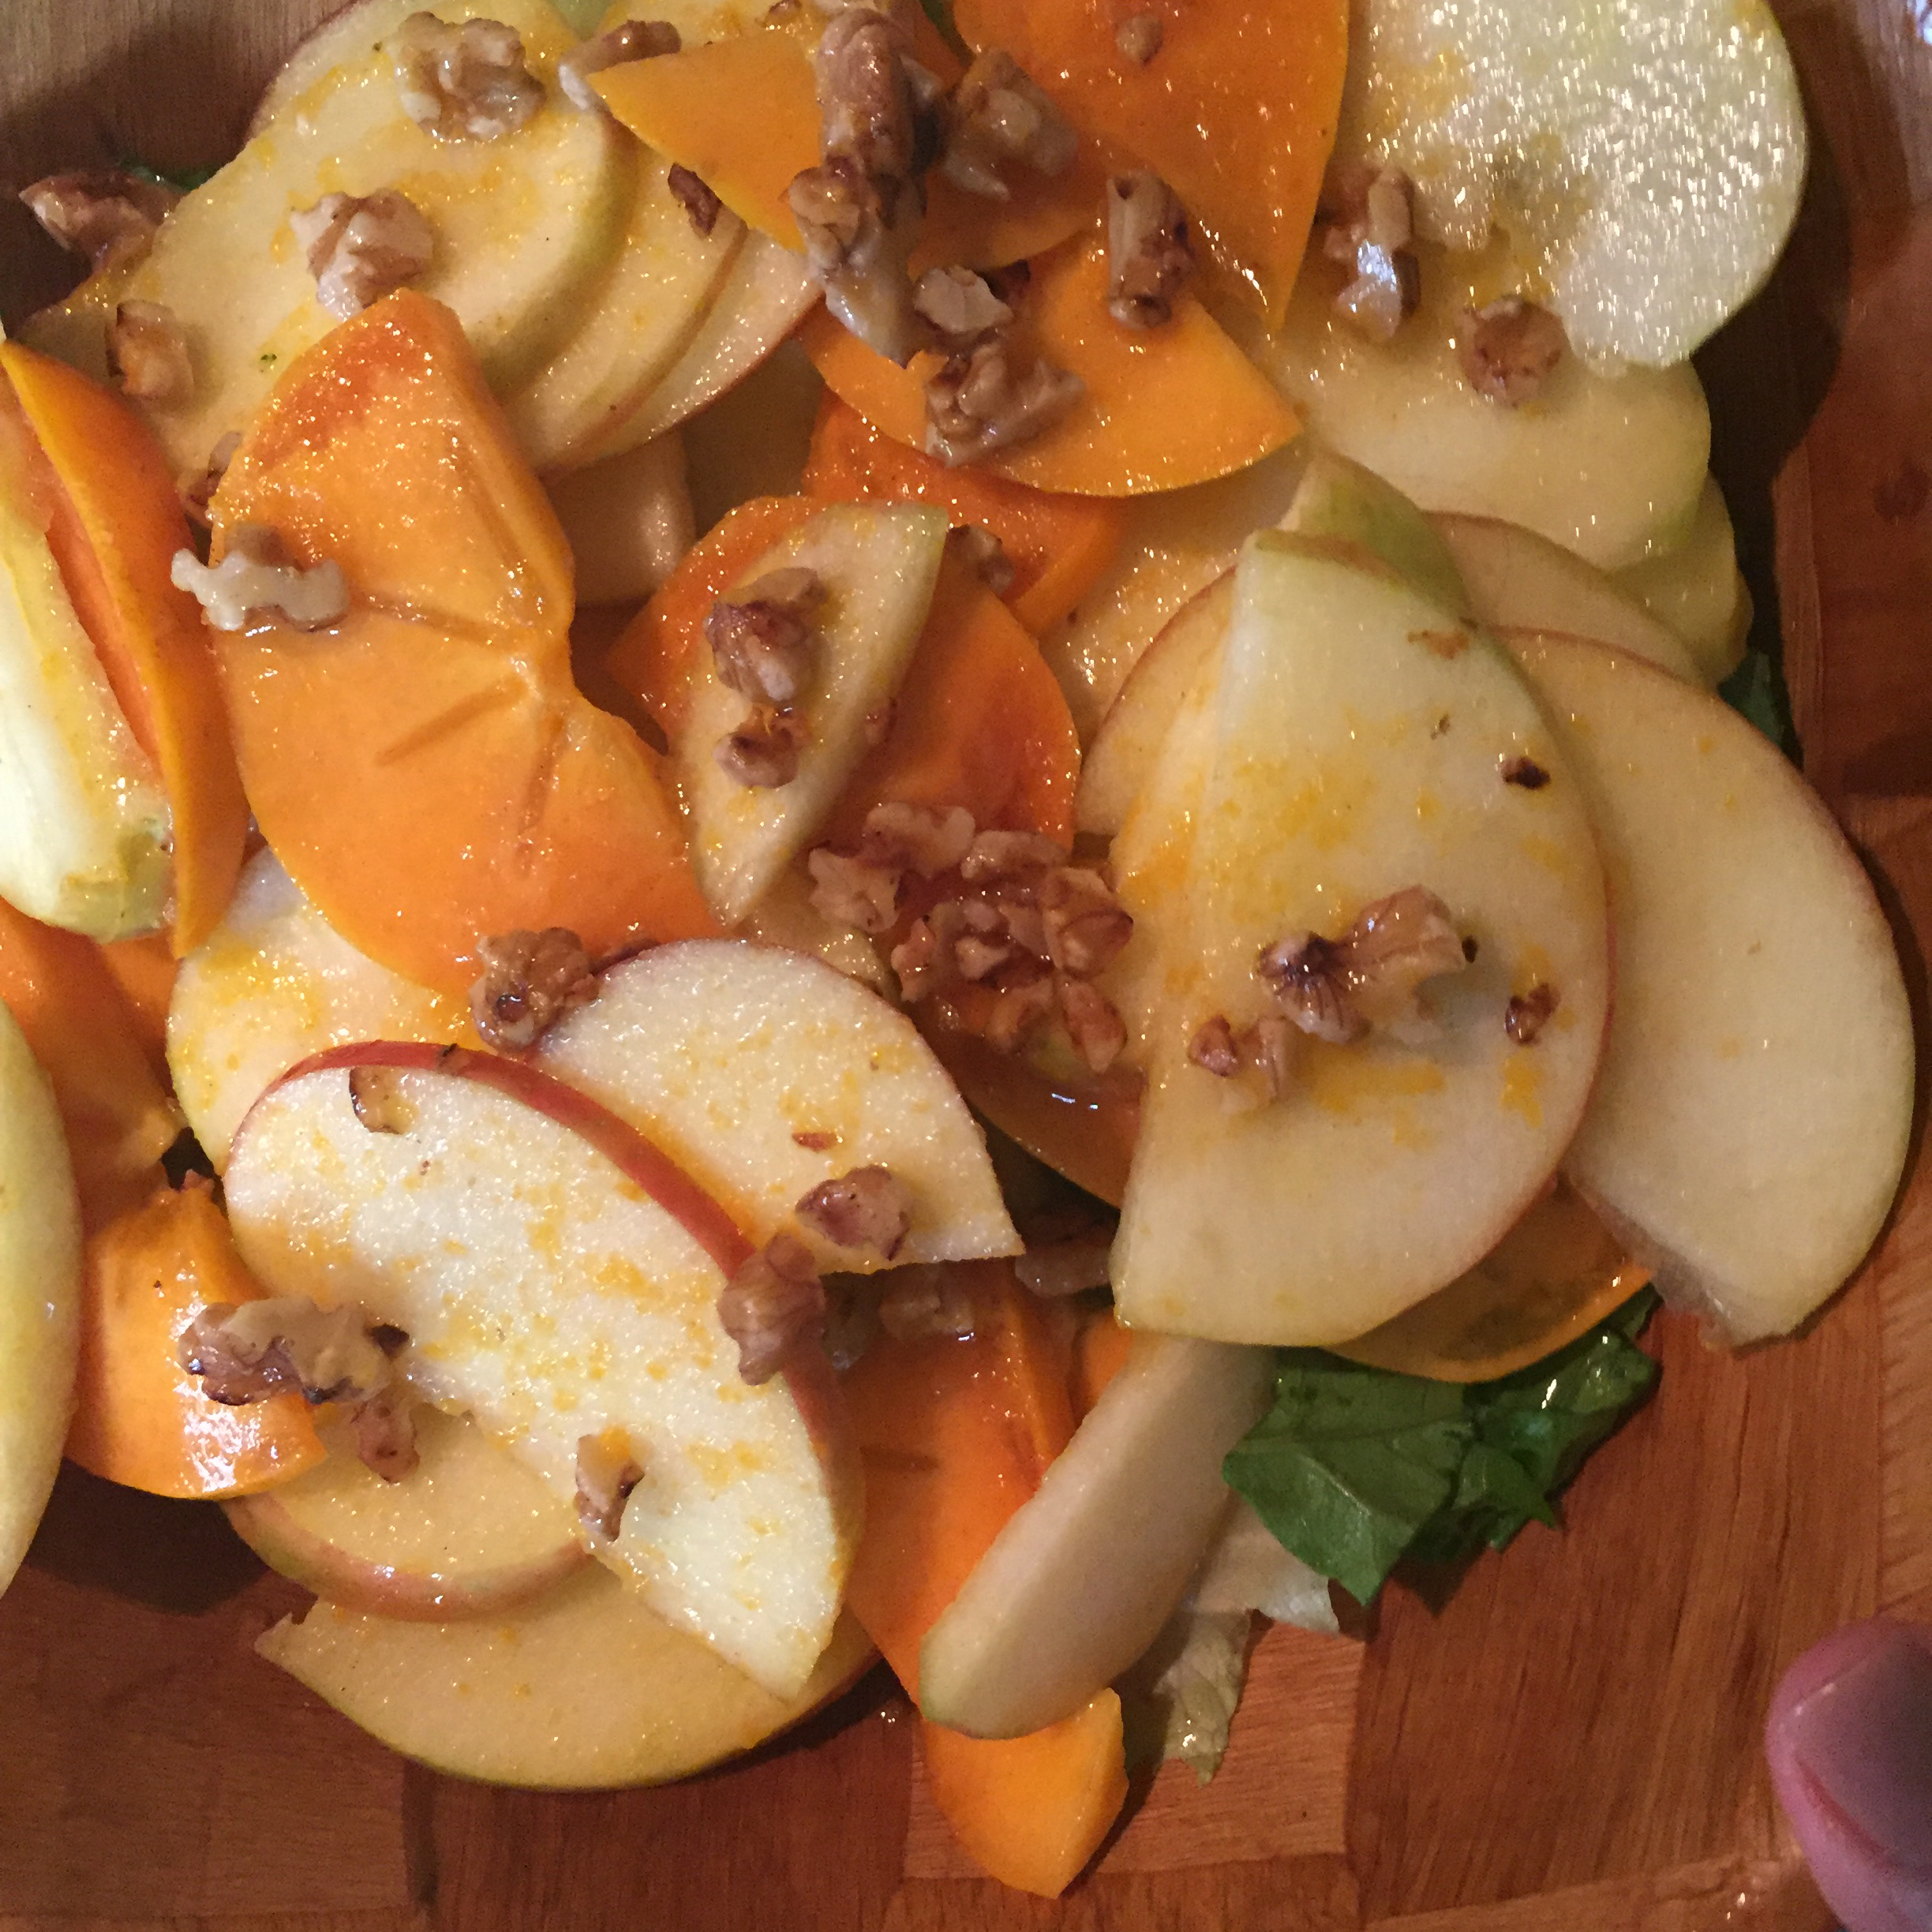 Persimmon and Apple Salad